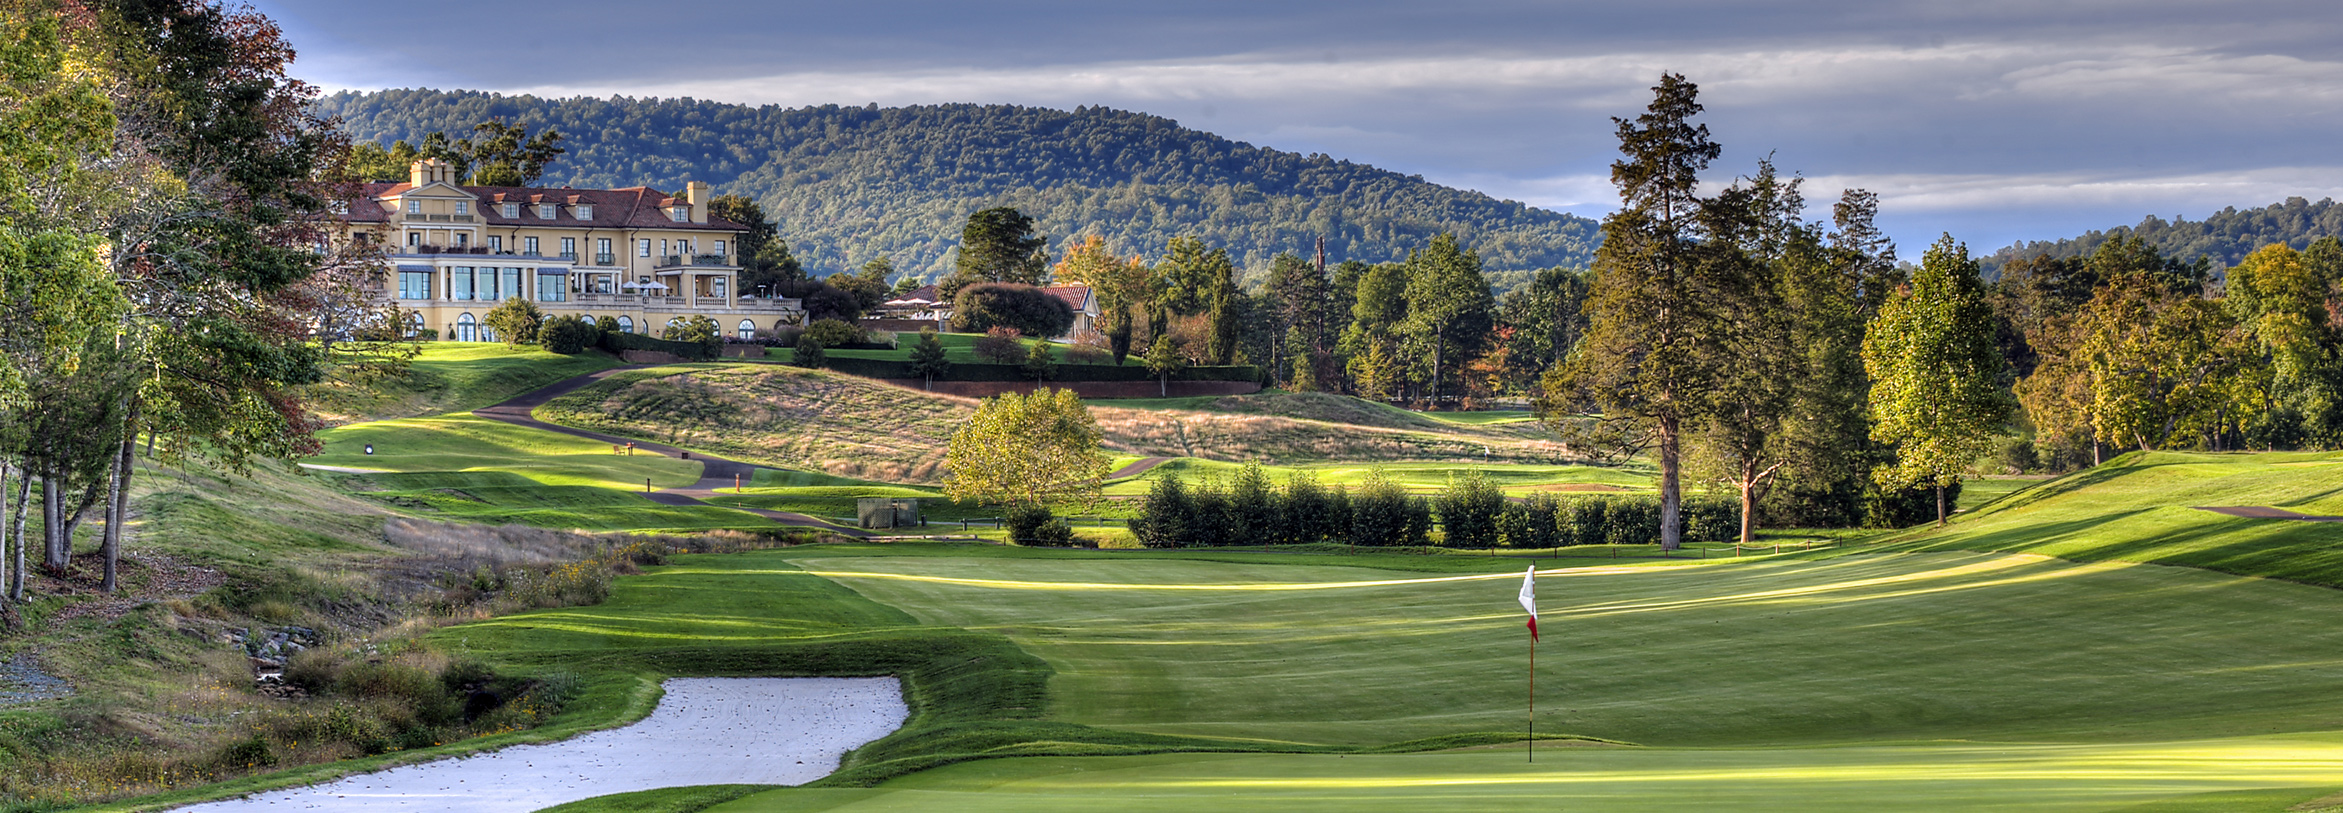 Keswick (VA) United States  city pictures gallery : Destinations United States Virginia Keswick Hall and Golf Club